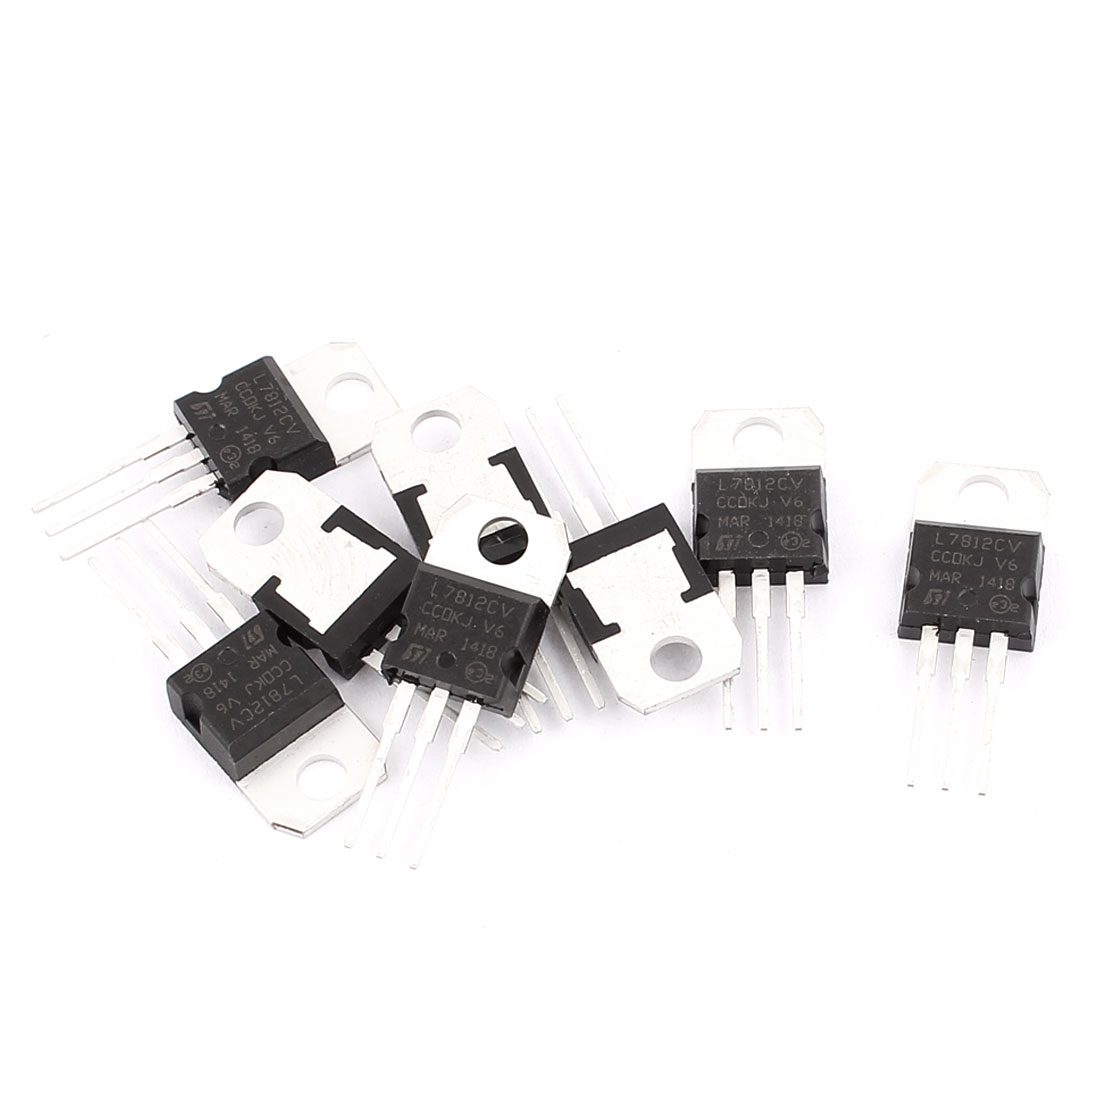 8 Pcs 12V 1A 3 Pin Terminals L7812CV Positive Voltage Regulator TO-220